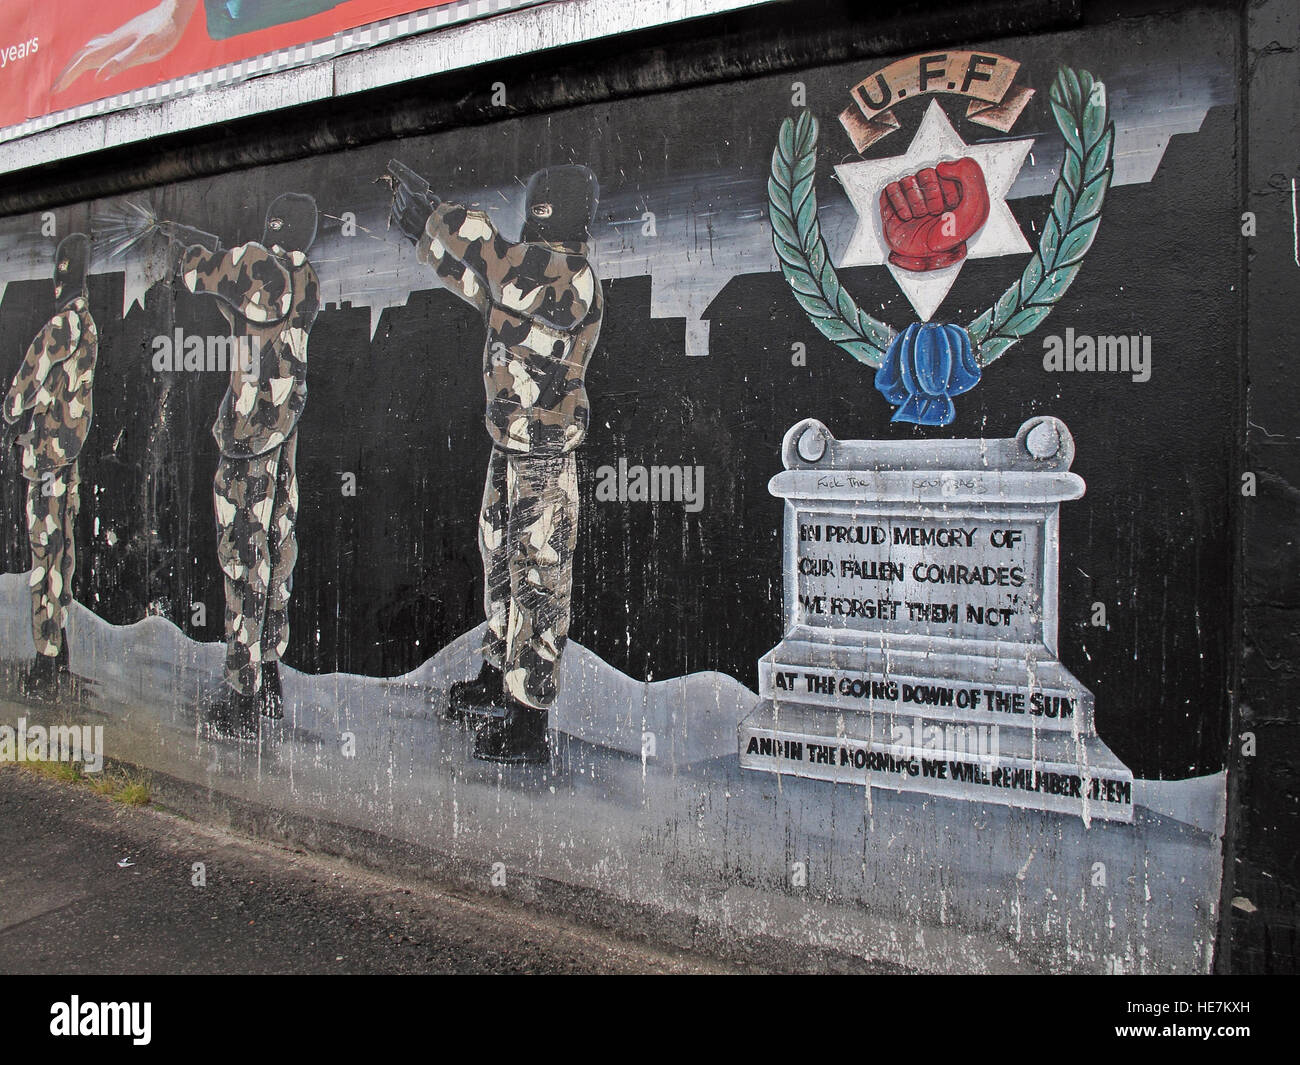 Red hand,Ulster,memorial,UFF,Unionist,mural,off,Shankill,rd,Road,West Belfast,Northern Ireland,UK,Ireland,fighter,fighting,in,memory,of,fallen,comrades,Ulster,Freedom,Fight,fighers,Ulster Freedom Fighters,GoTonySmith,@HotpixUK,Tony,Smith,UK,GB,Great,Britain,United,Kingdom,Irish,British,Ireland,problem,with,problem with,issue with,NI,Northern,Northern Ireland,Belfast,City,Centre,Art,Artists,the,troubles,The Troubles,Good Friday Agreement,Peace,honour,painting,wall,walls,tribute,Unionist,unionism,Protestant,community,Fight,Justice,West,Beal,feirste,martyrs,social,tour,tourism,tourists,urban,six,counties,6,backdrop,county,Antrim,UVF,DUP,British,GB,Empire,Buy Pictures of,Buy Images Of,Images of,Stock Images,Tony Smith,United Kingdom,Great Britain,British Isles,Belfast protestant community,Peoples army